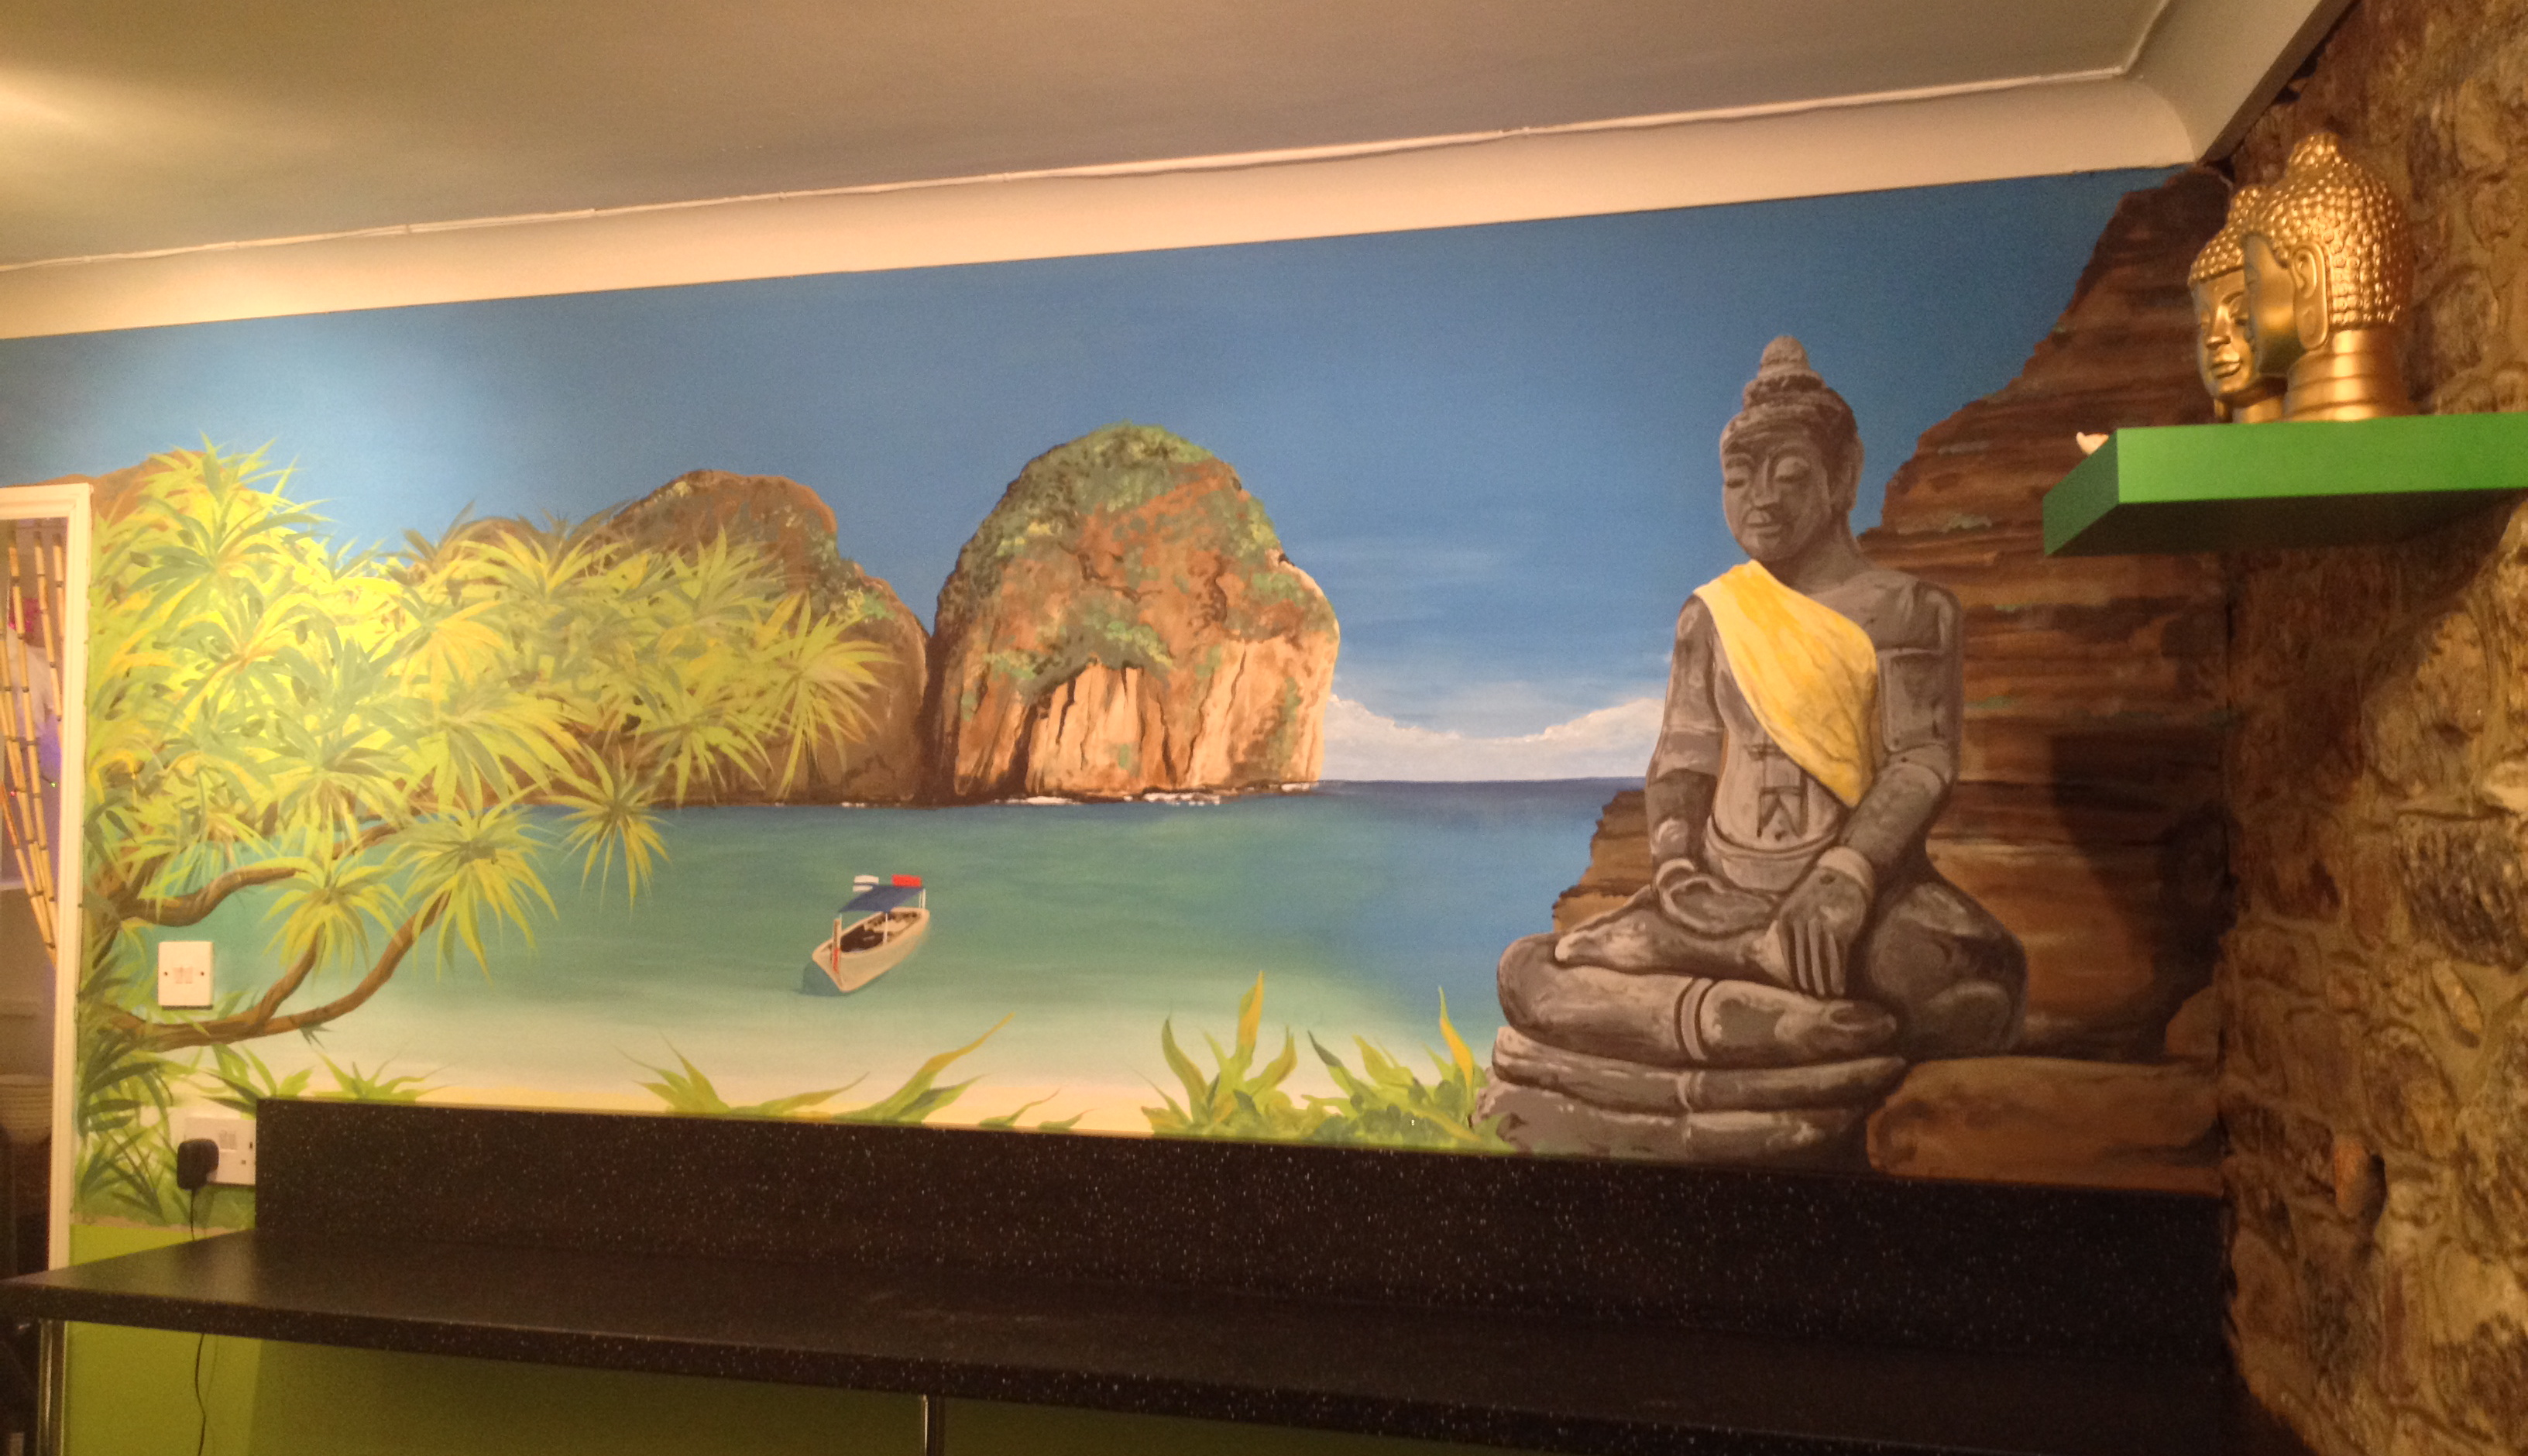 Thai Restaurant Wall Mural